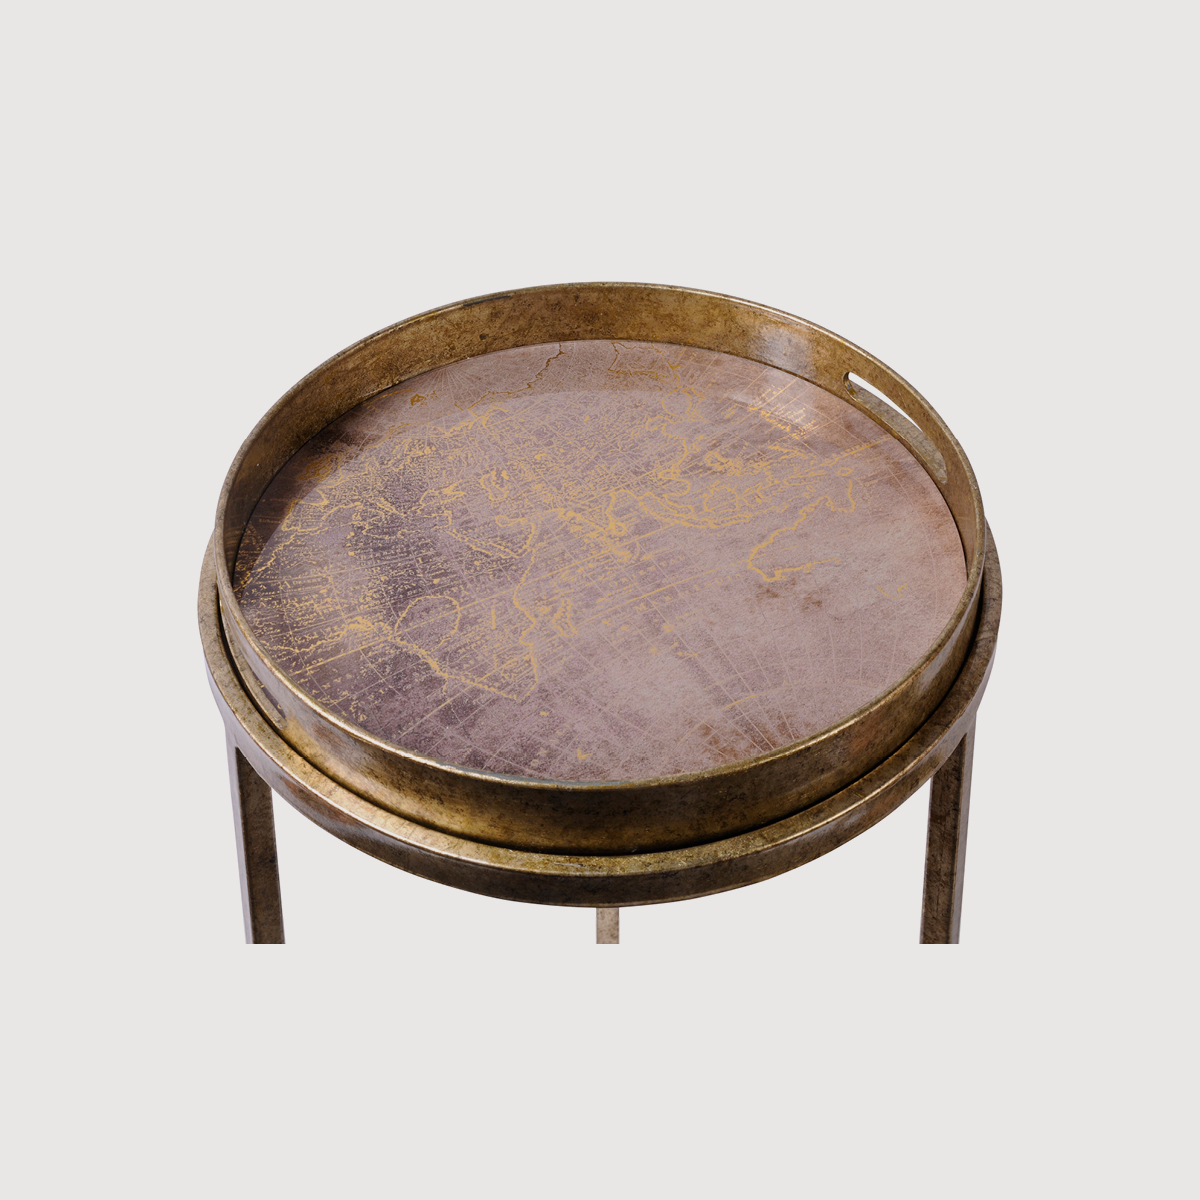 Antique Gold Atlas Side Tables – set of 2 gallery image